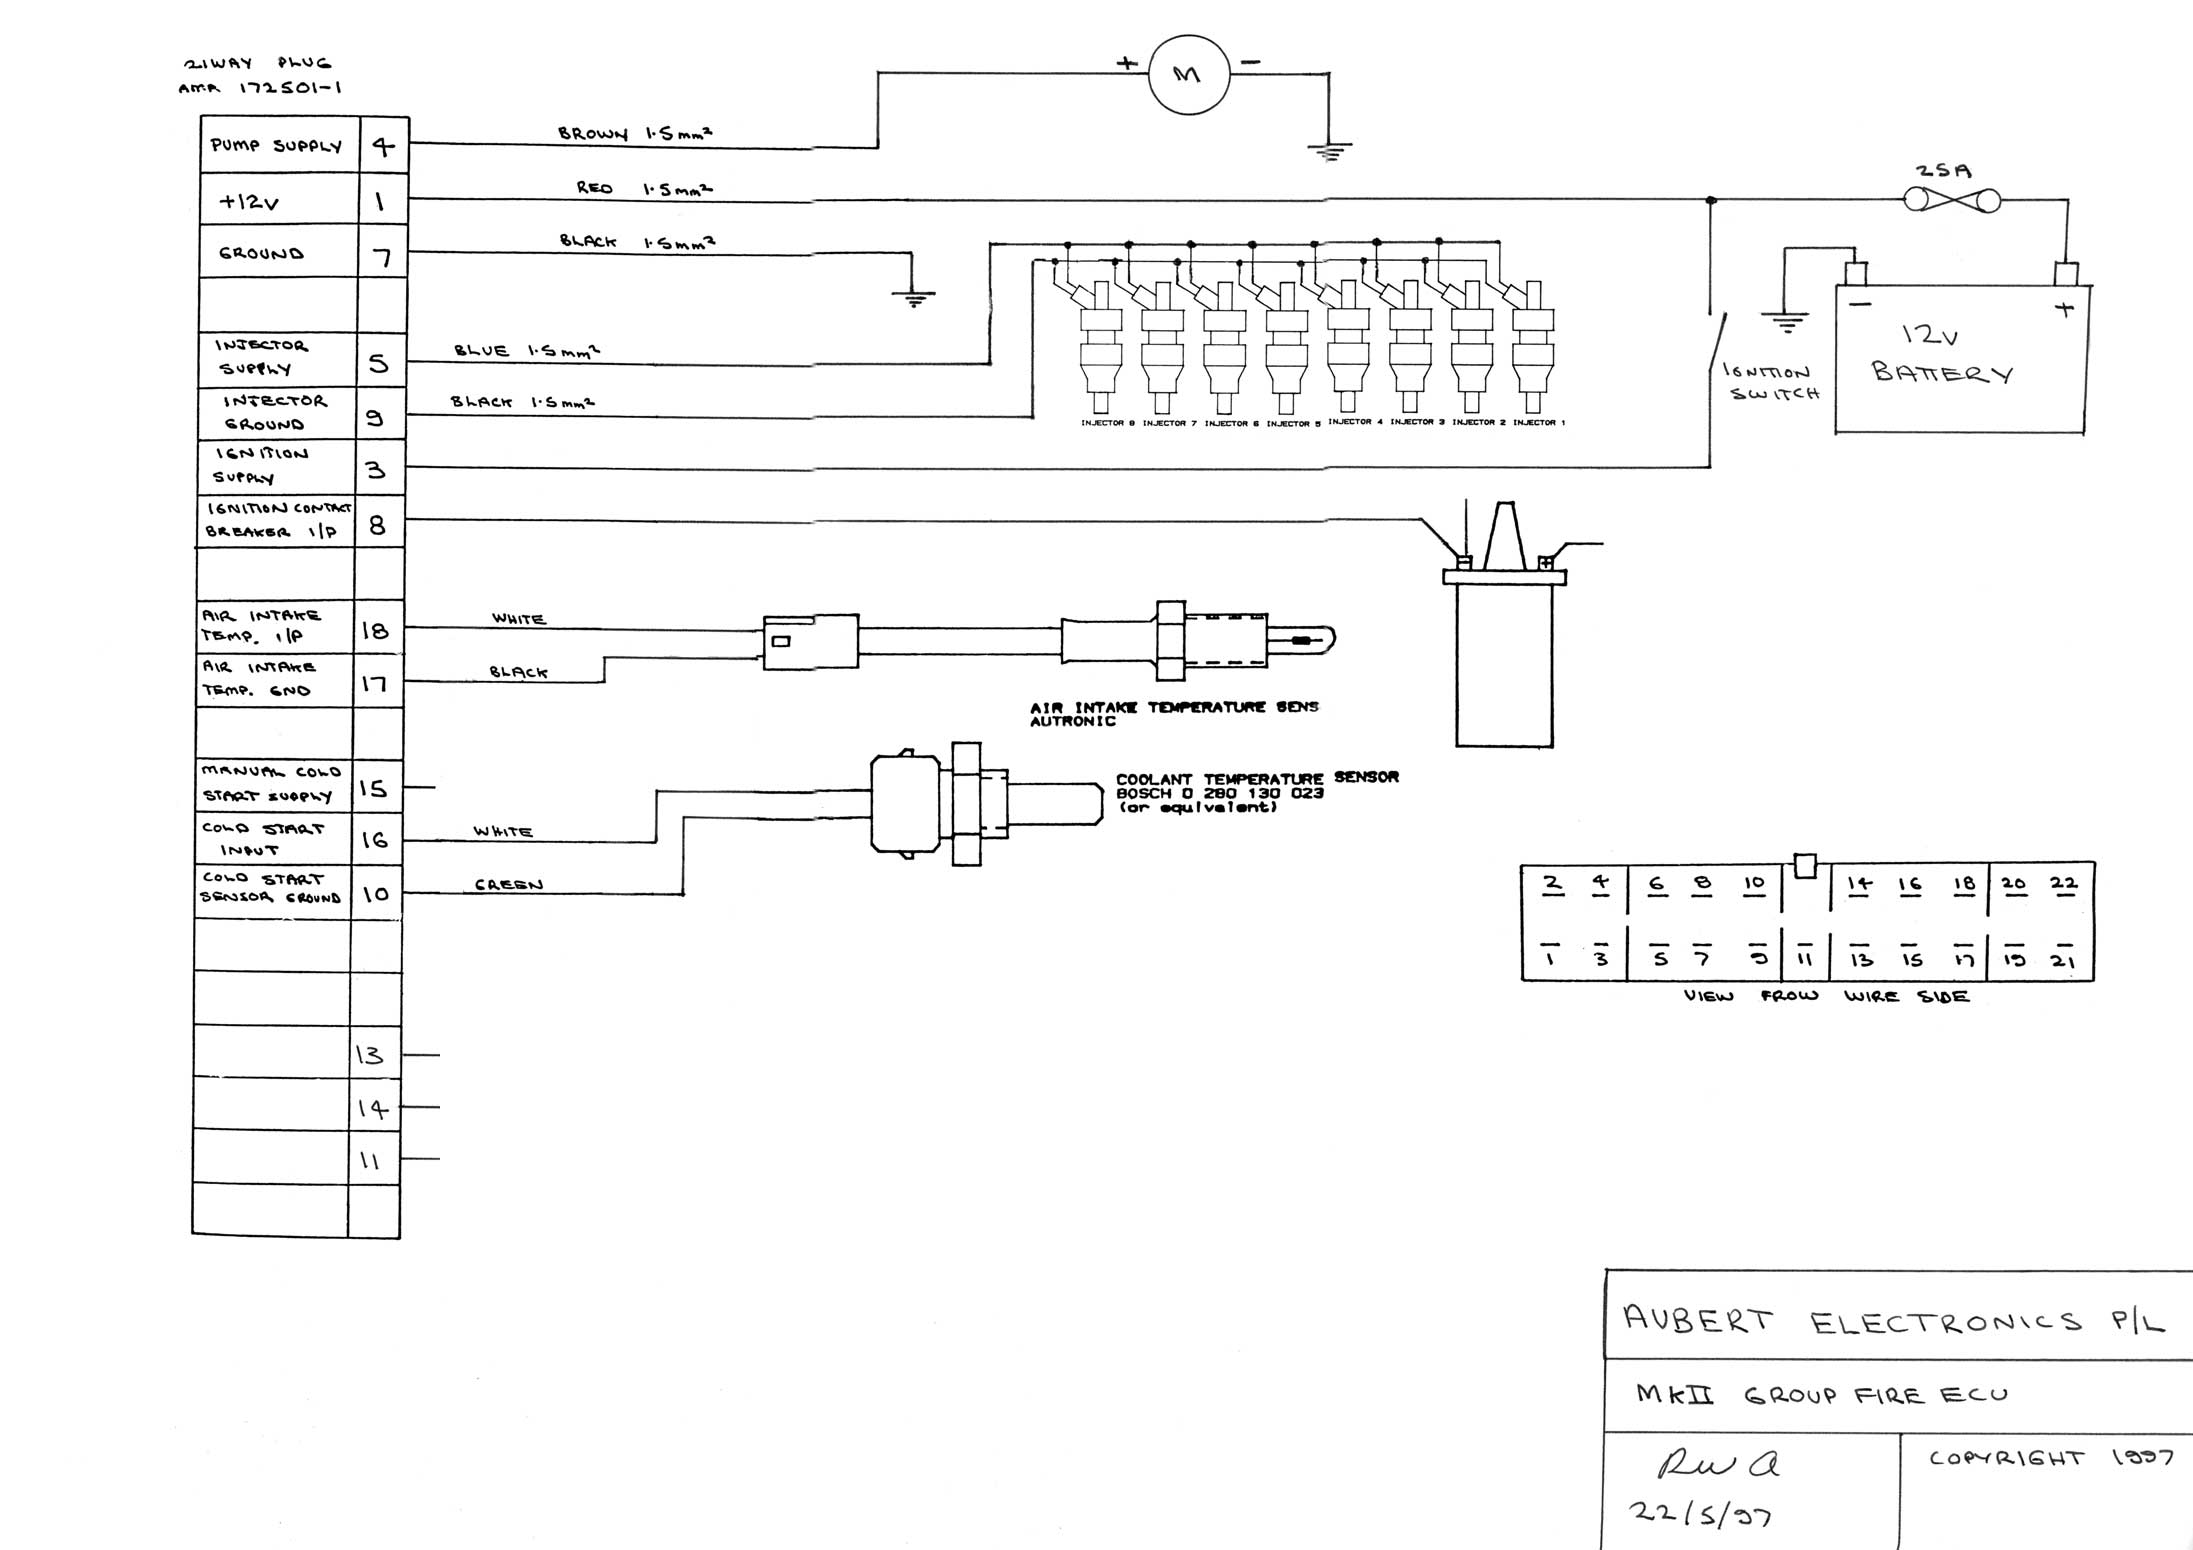 Group fire_wiring wiring diagram page smc fan wiring diagram at gsmx.co